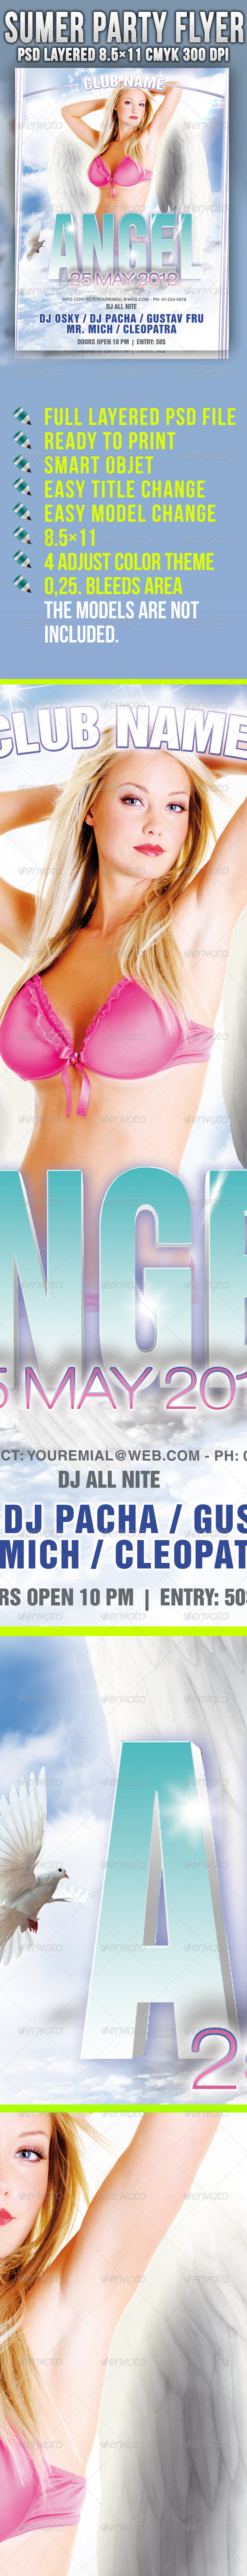 Angel Party Flyer - Clubs & Parties Events